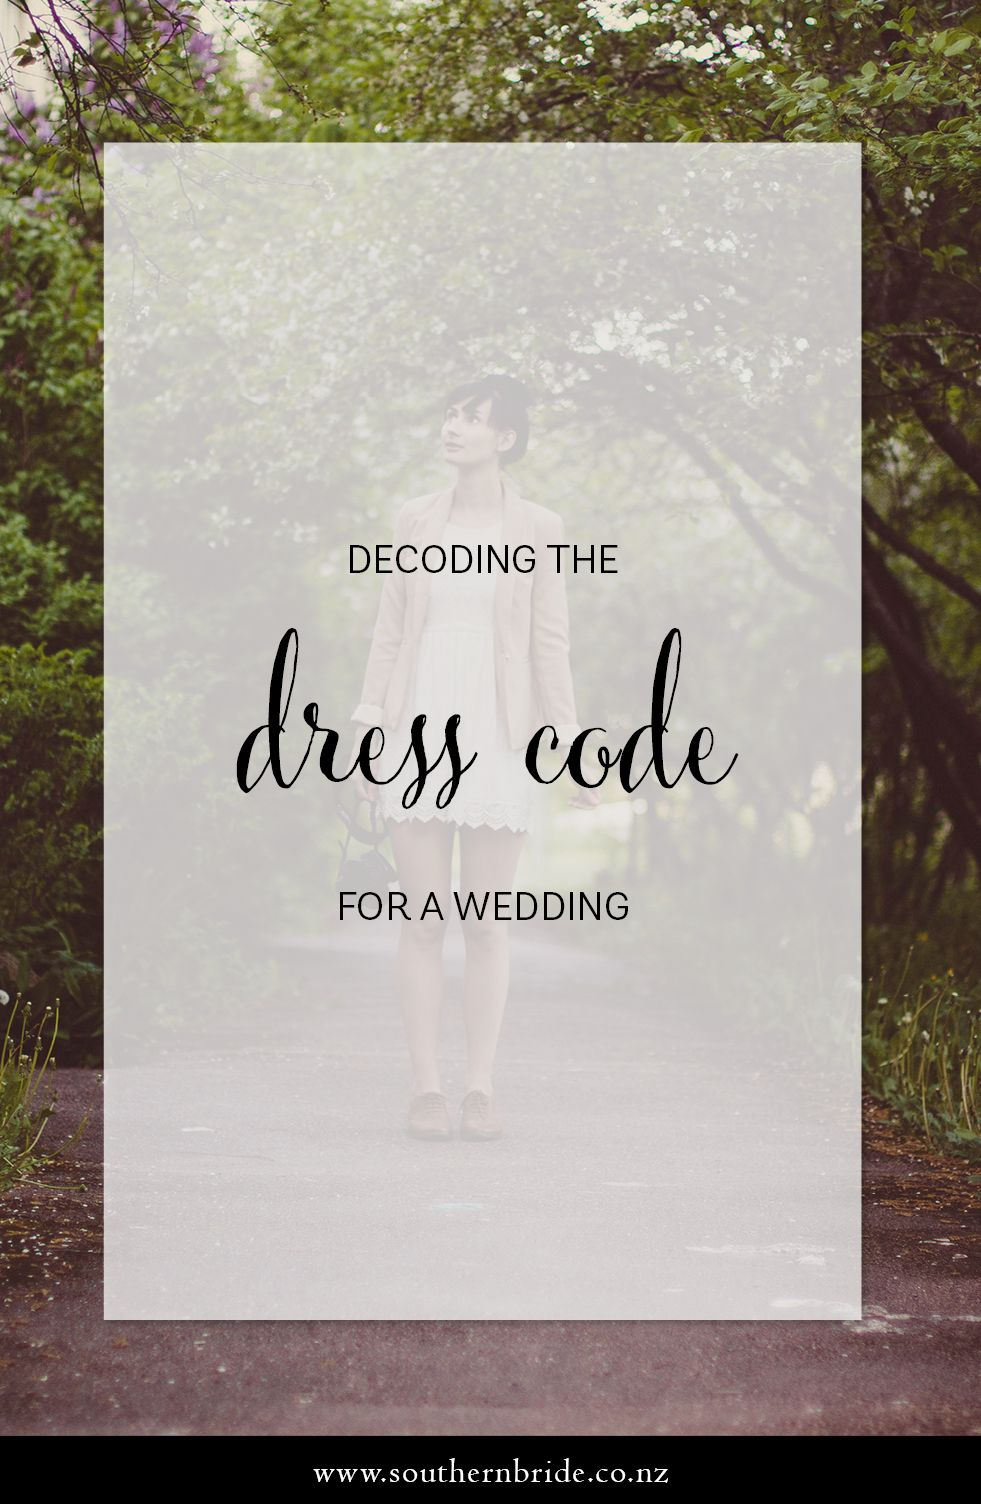 What's the dress code for weddings? Wedding dress code